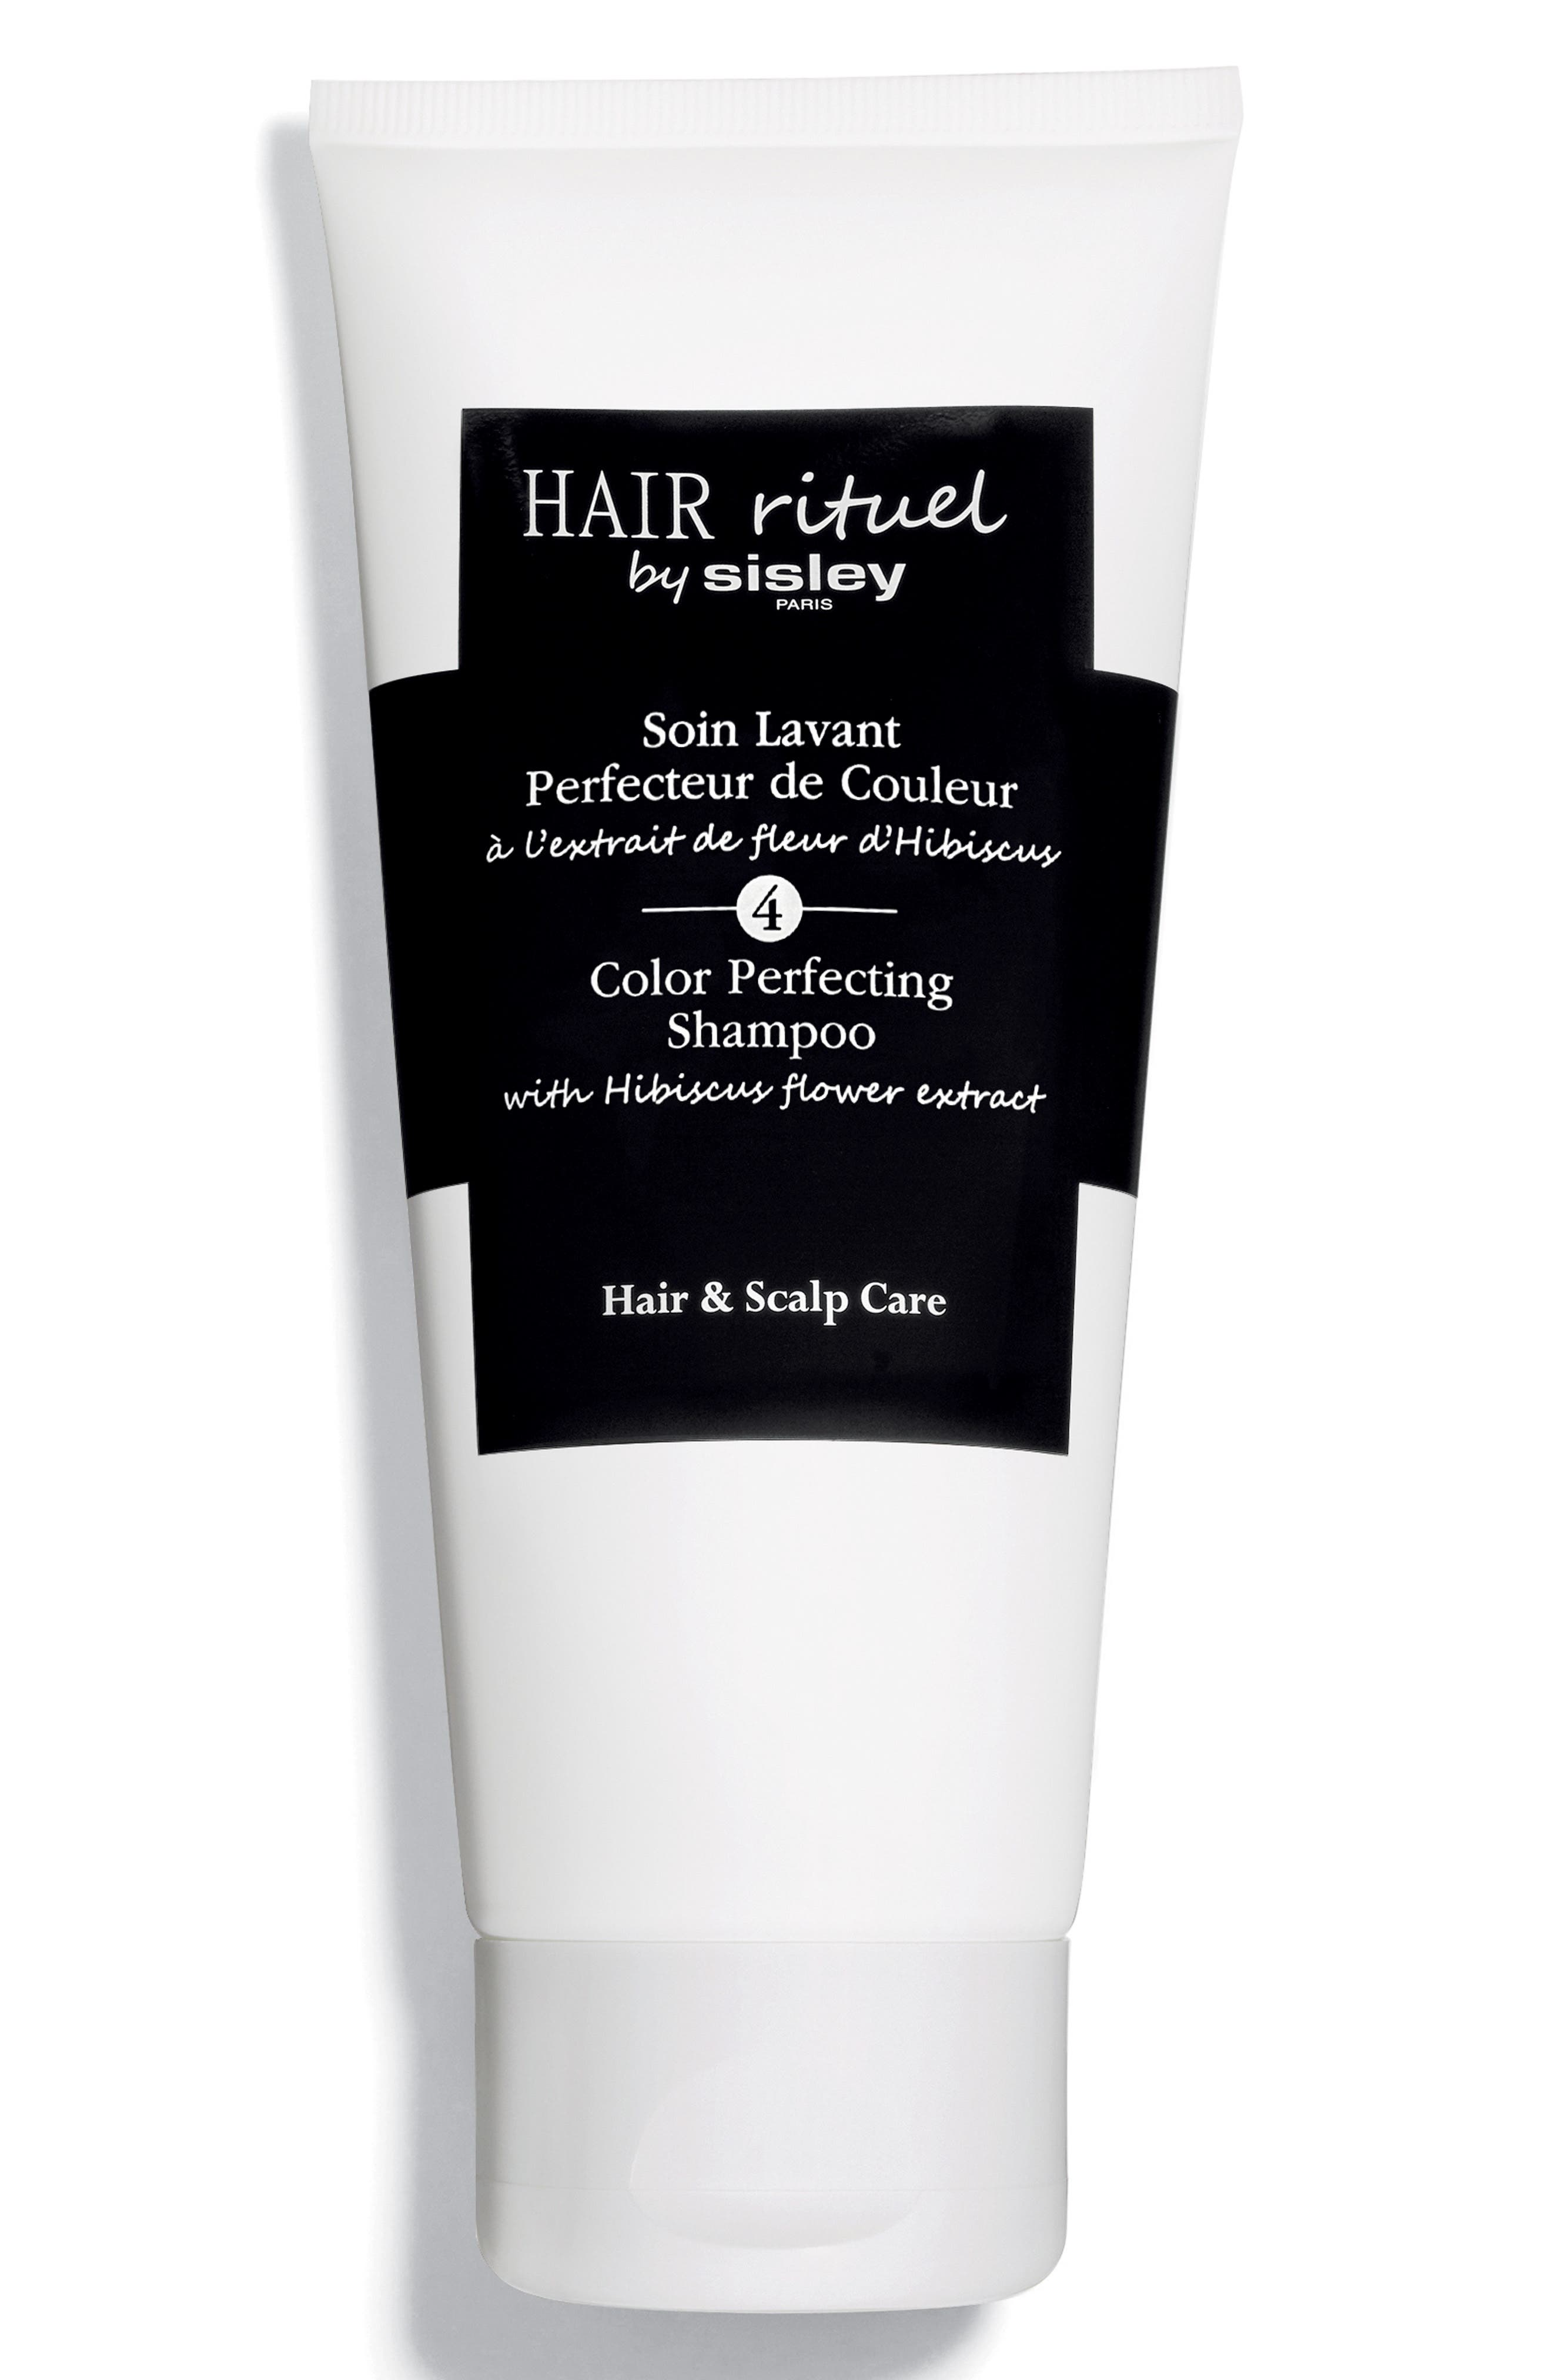 What it is: A color-perfecting shampoo with hibiscus flower extract that gently cleanses and cares for colored and highlighted hair. What it does: Its fluid, pearly texture transforms into a fine and rich foam on contact while its formula supports prolonging color intensity from fading after repeated washing. With a fresh fragrance, this shampoo leaves your hair feeling light, soft and shiny, and delicately scented, too. How to use: Apply a small